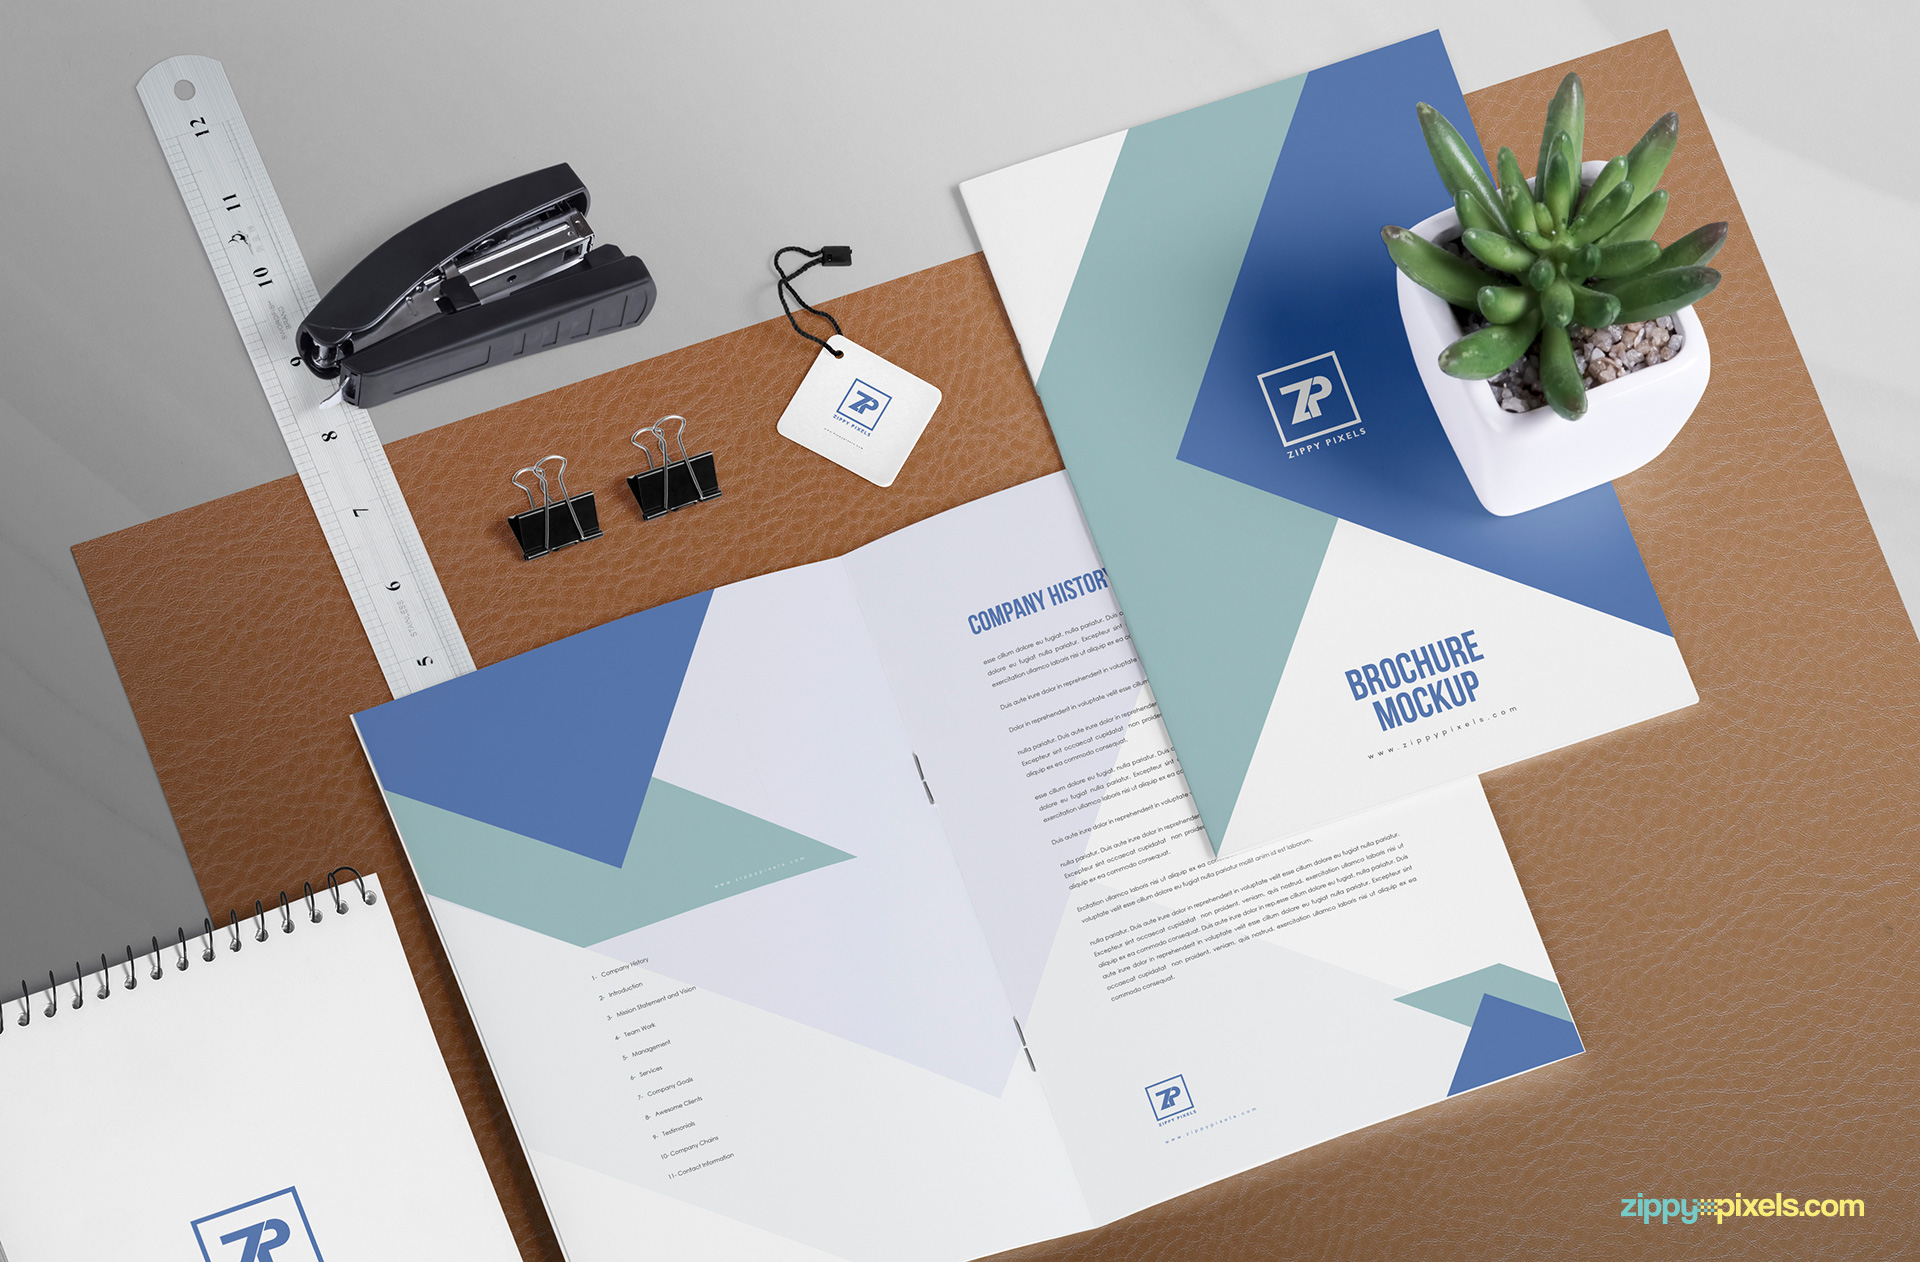 07-free-stationery-mockups-for-branding-824x542